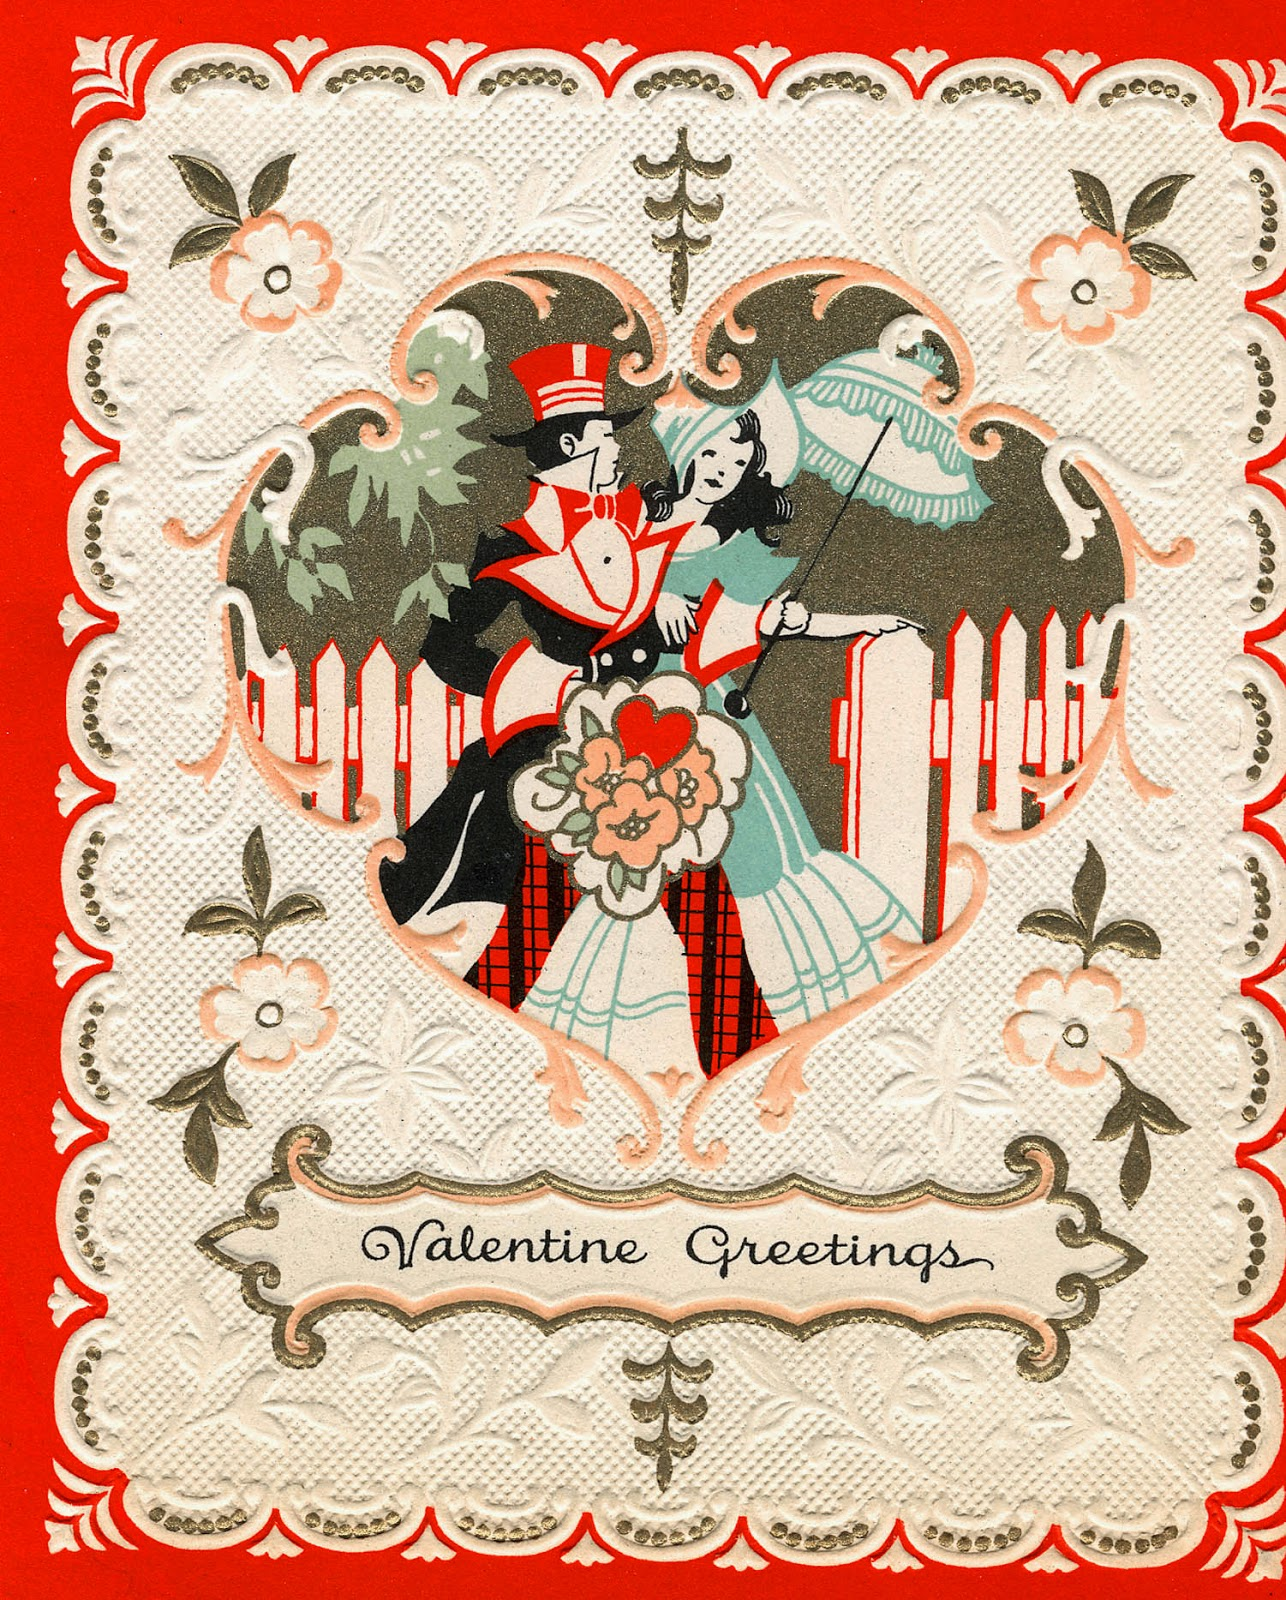 The literate quilter vintage greeting cards i have a collection of vintage greeting cards some dating to the 1930s here are some vintage greeting cards featuring lovely ladies kristyandbryce Choice Image